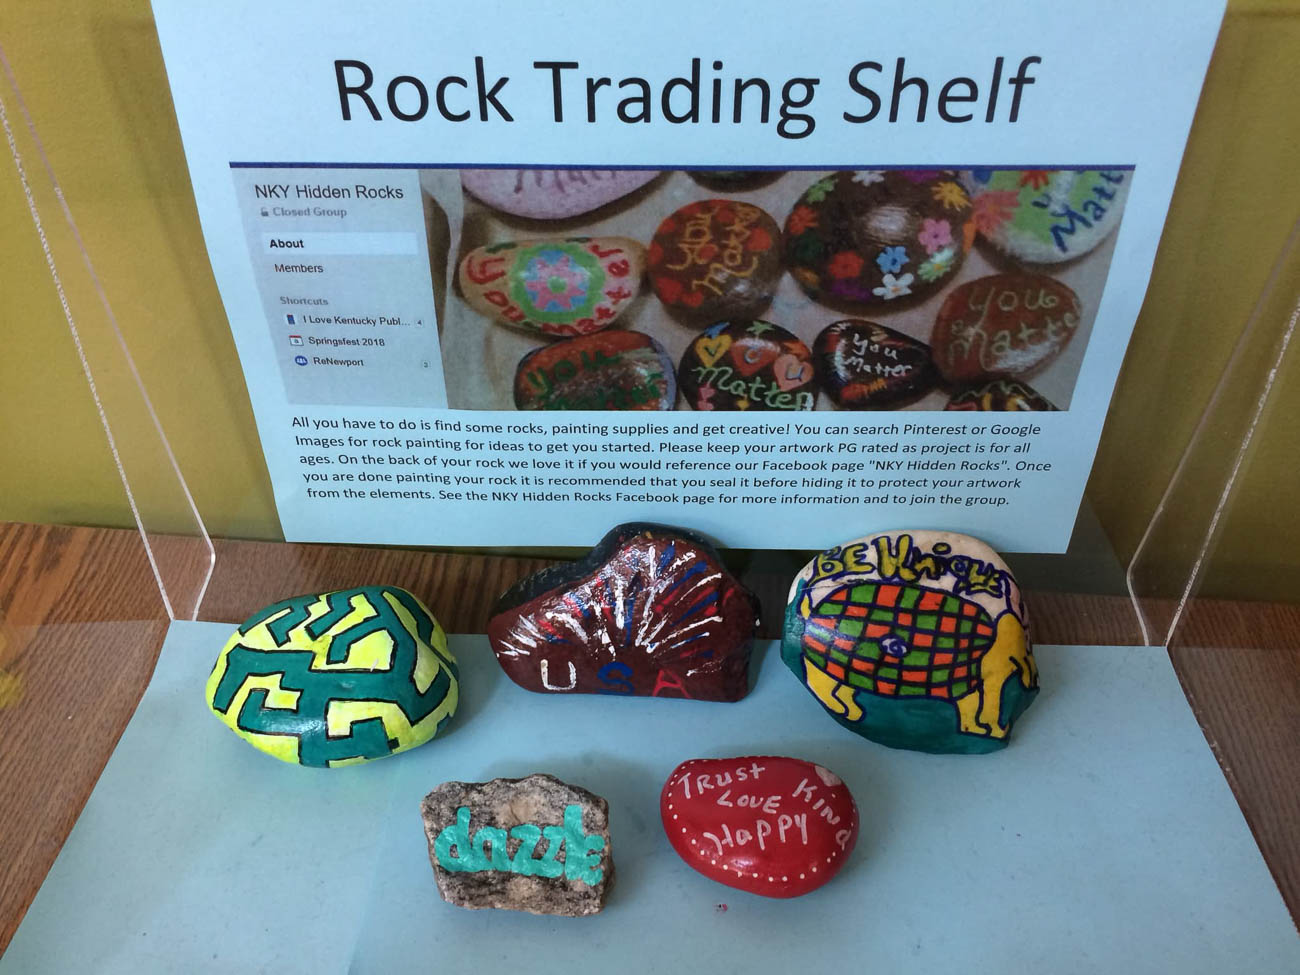 Some local businesses let NKY Hidden Rocks set up a stand where people can trade rocks or find new ones for those who may have limited mobility or can't go out to collect them for themselves. / Image: Kathy Moore // Published: 8.17.19